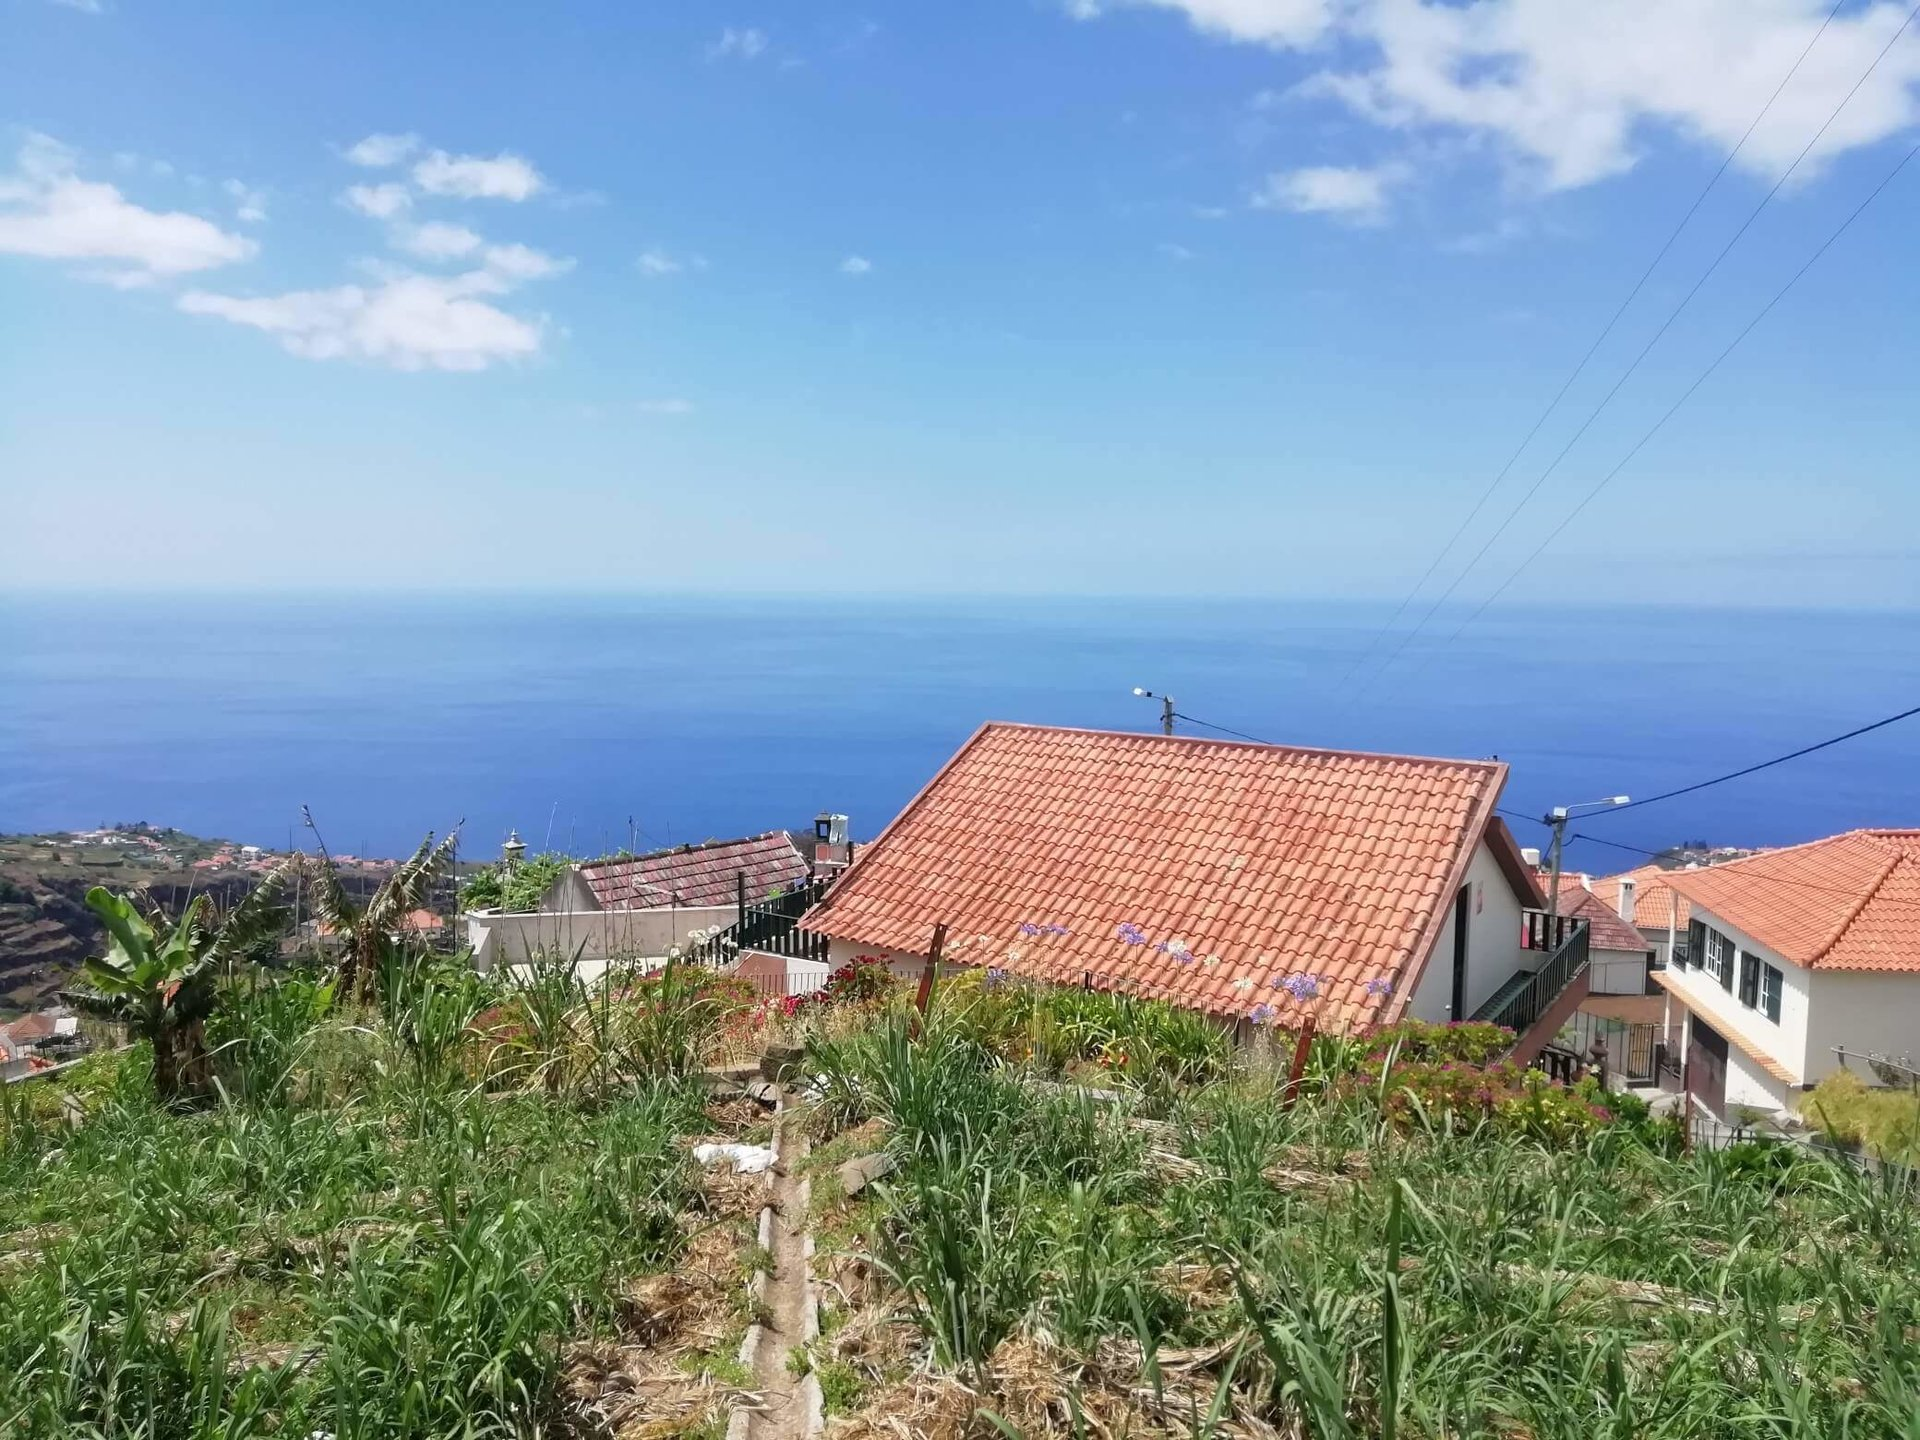 Building Land with Panoramic Ocean View